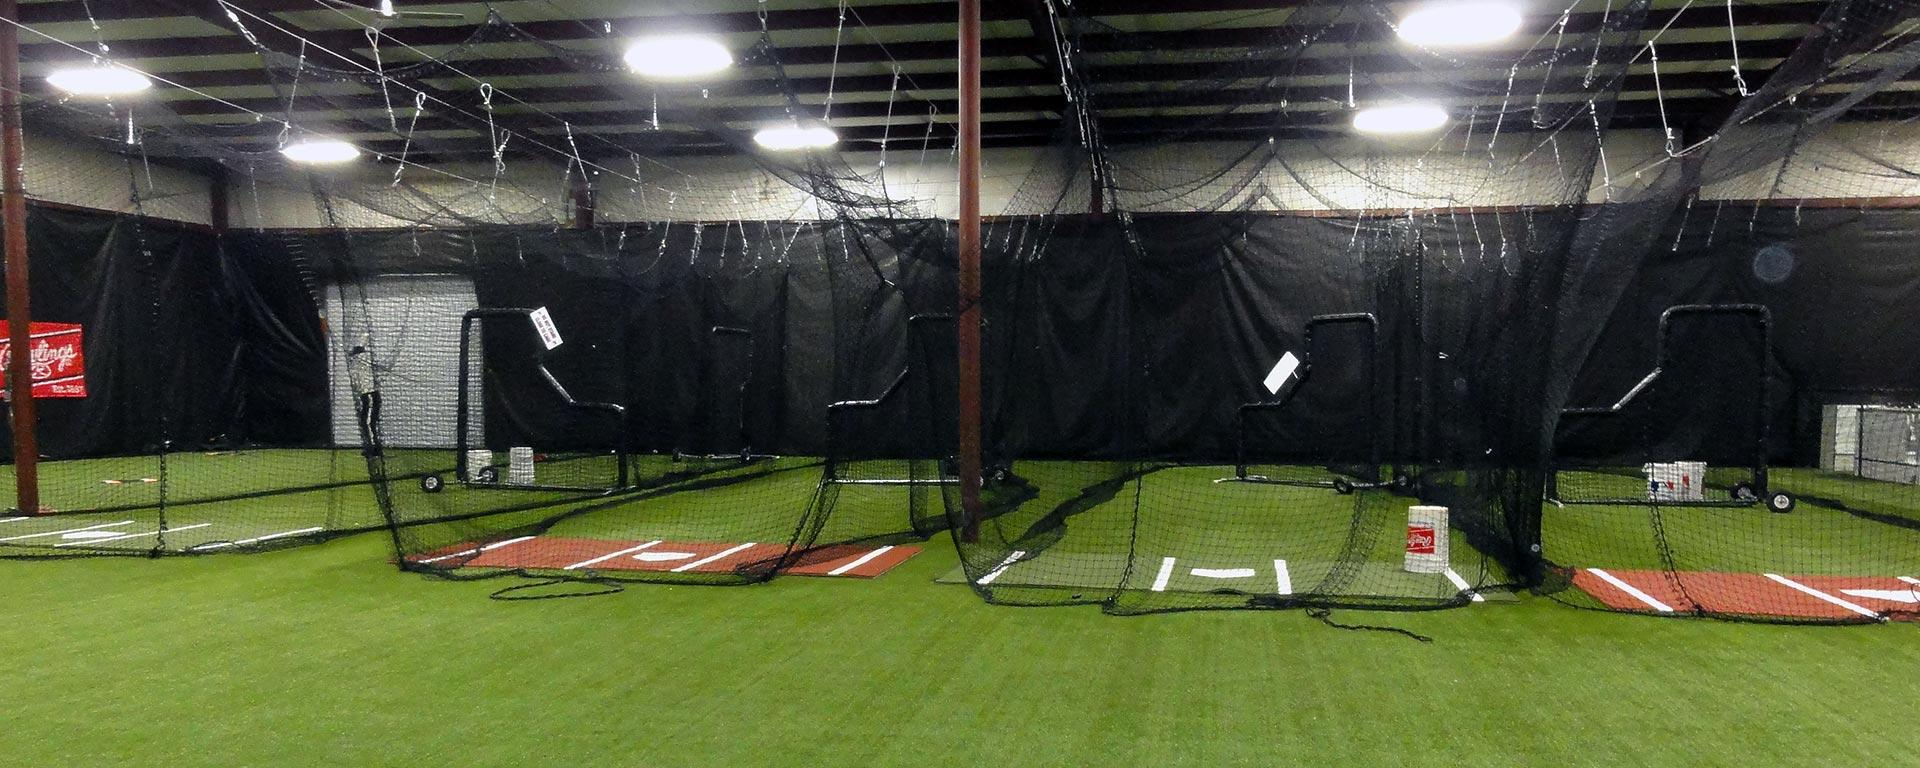 Indoor Outdoor Carpet For Batting Cages Vidalondon